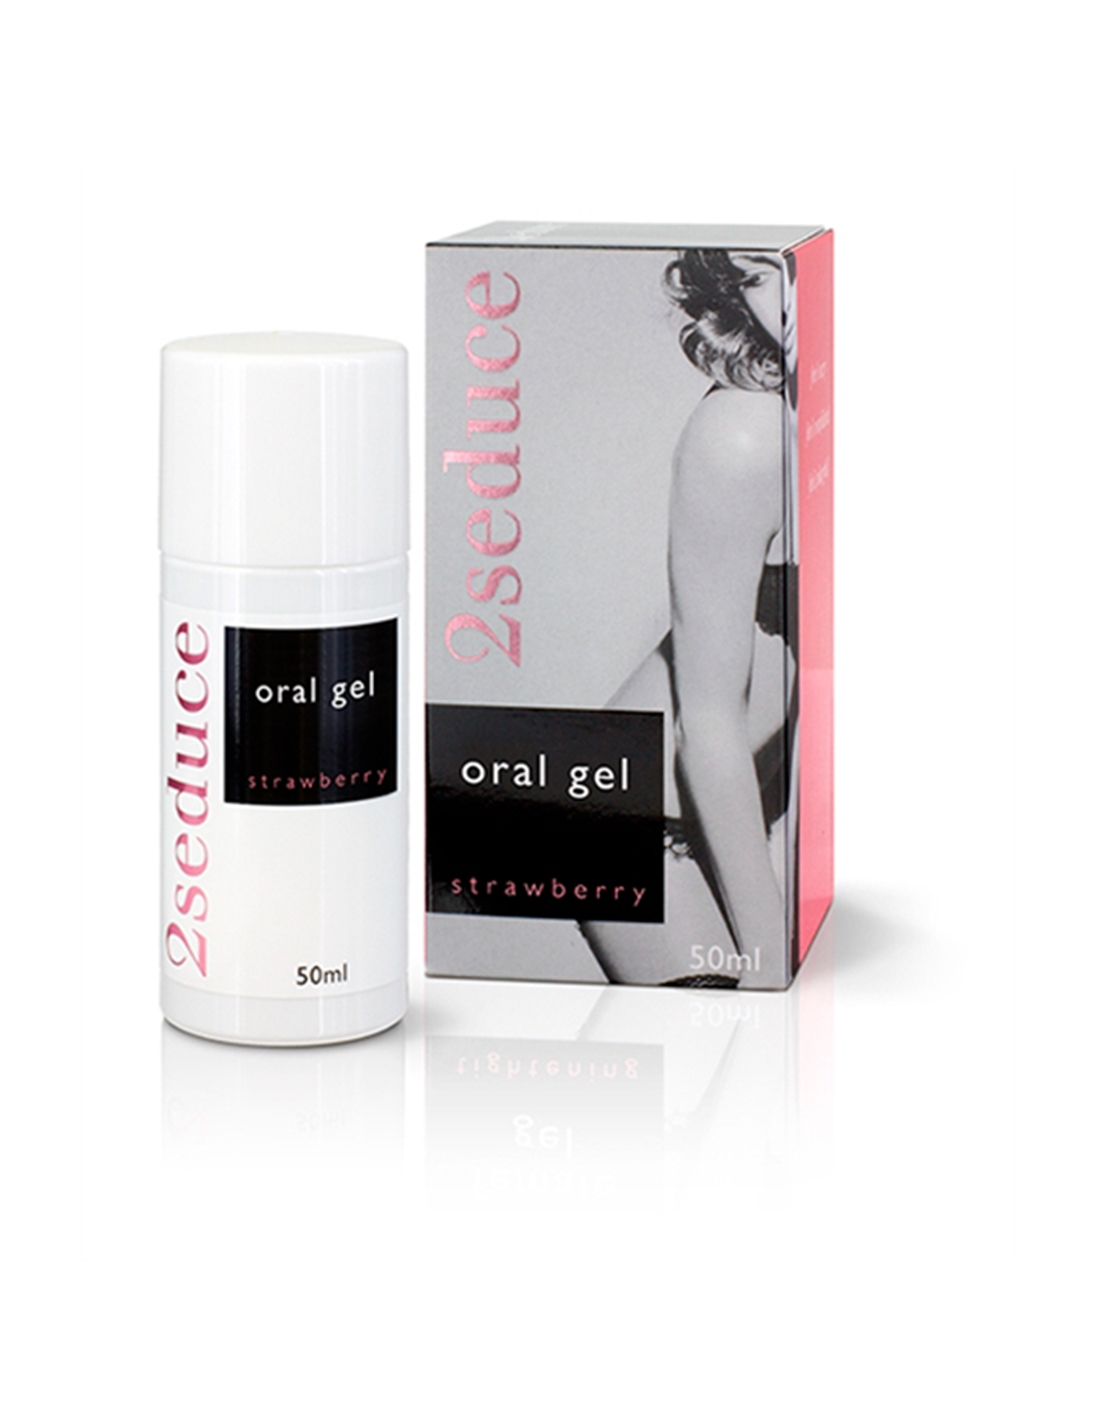 Gel Oral 2Seduce Sabor A Morango - 50ml - PR2010324148